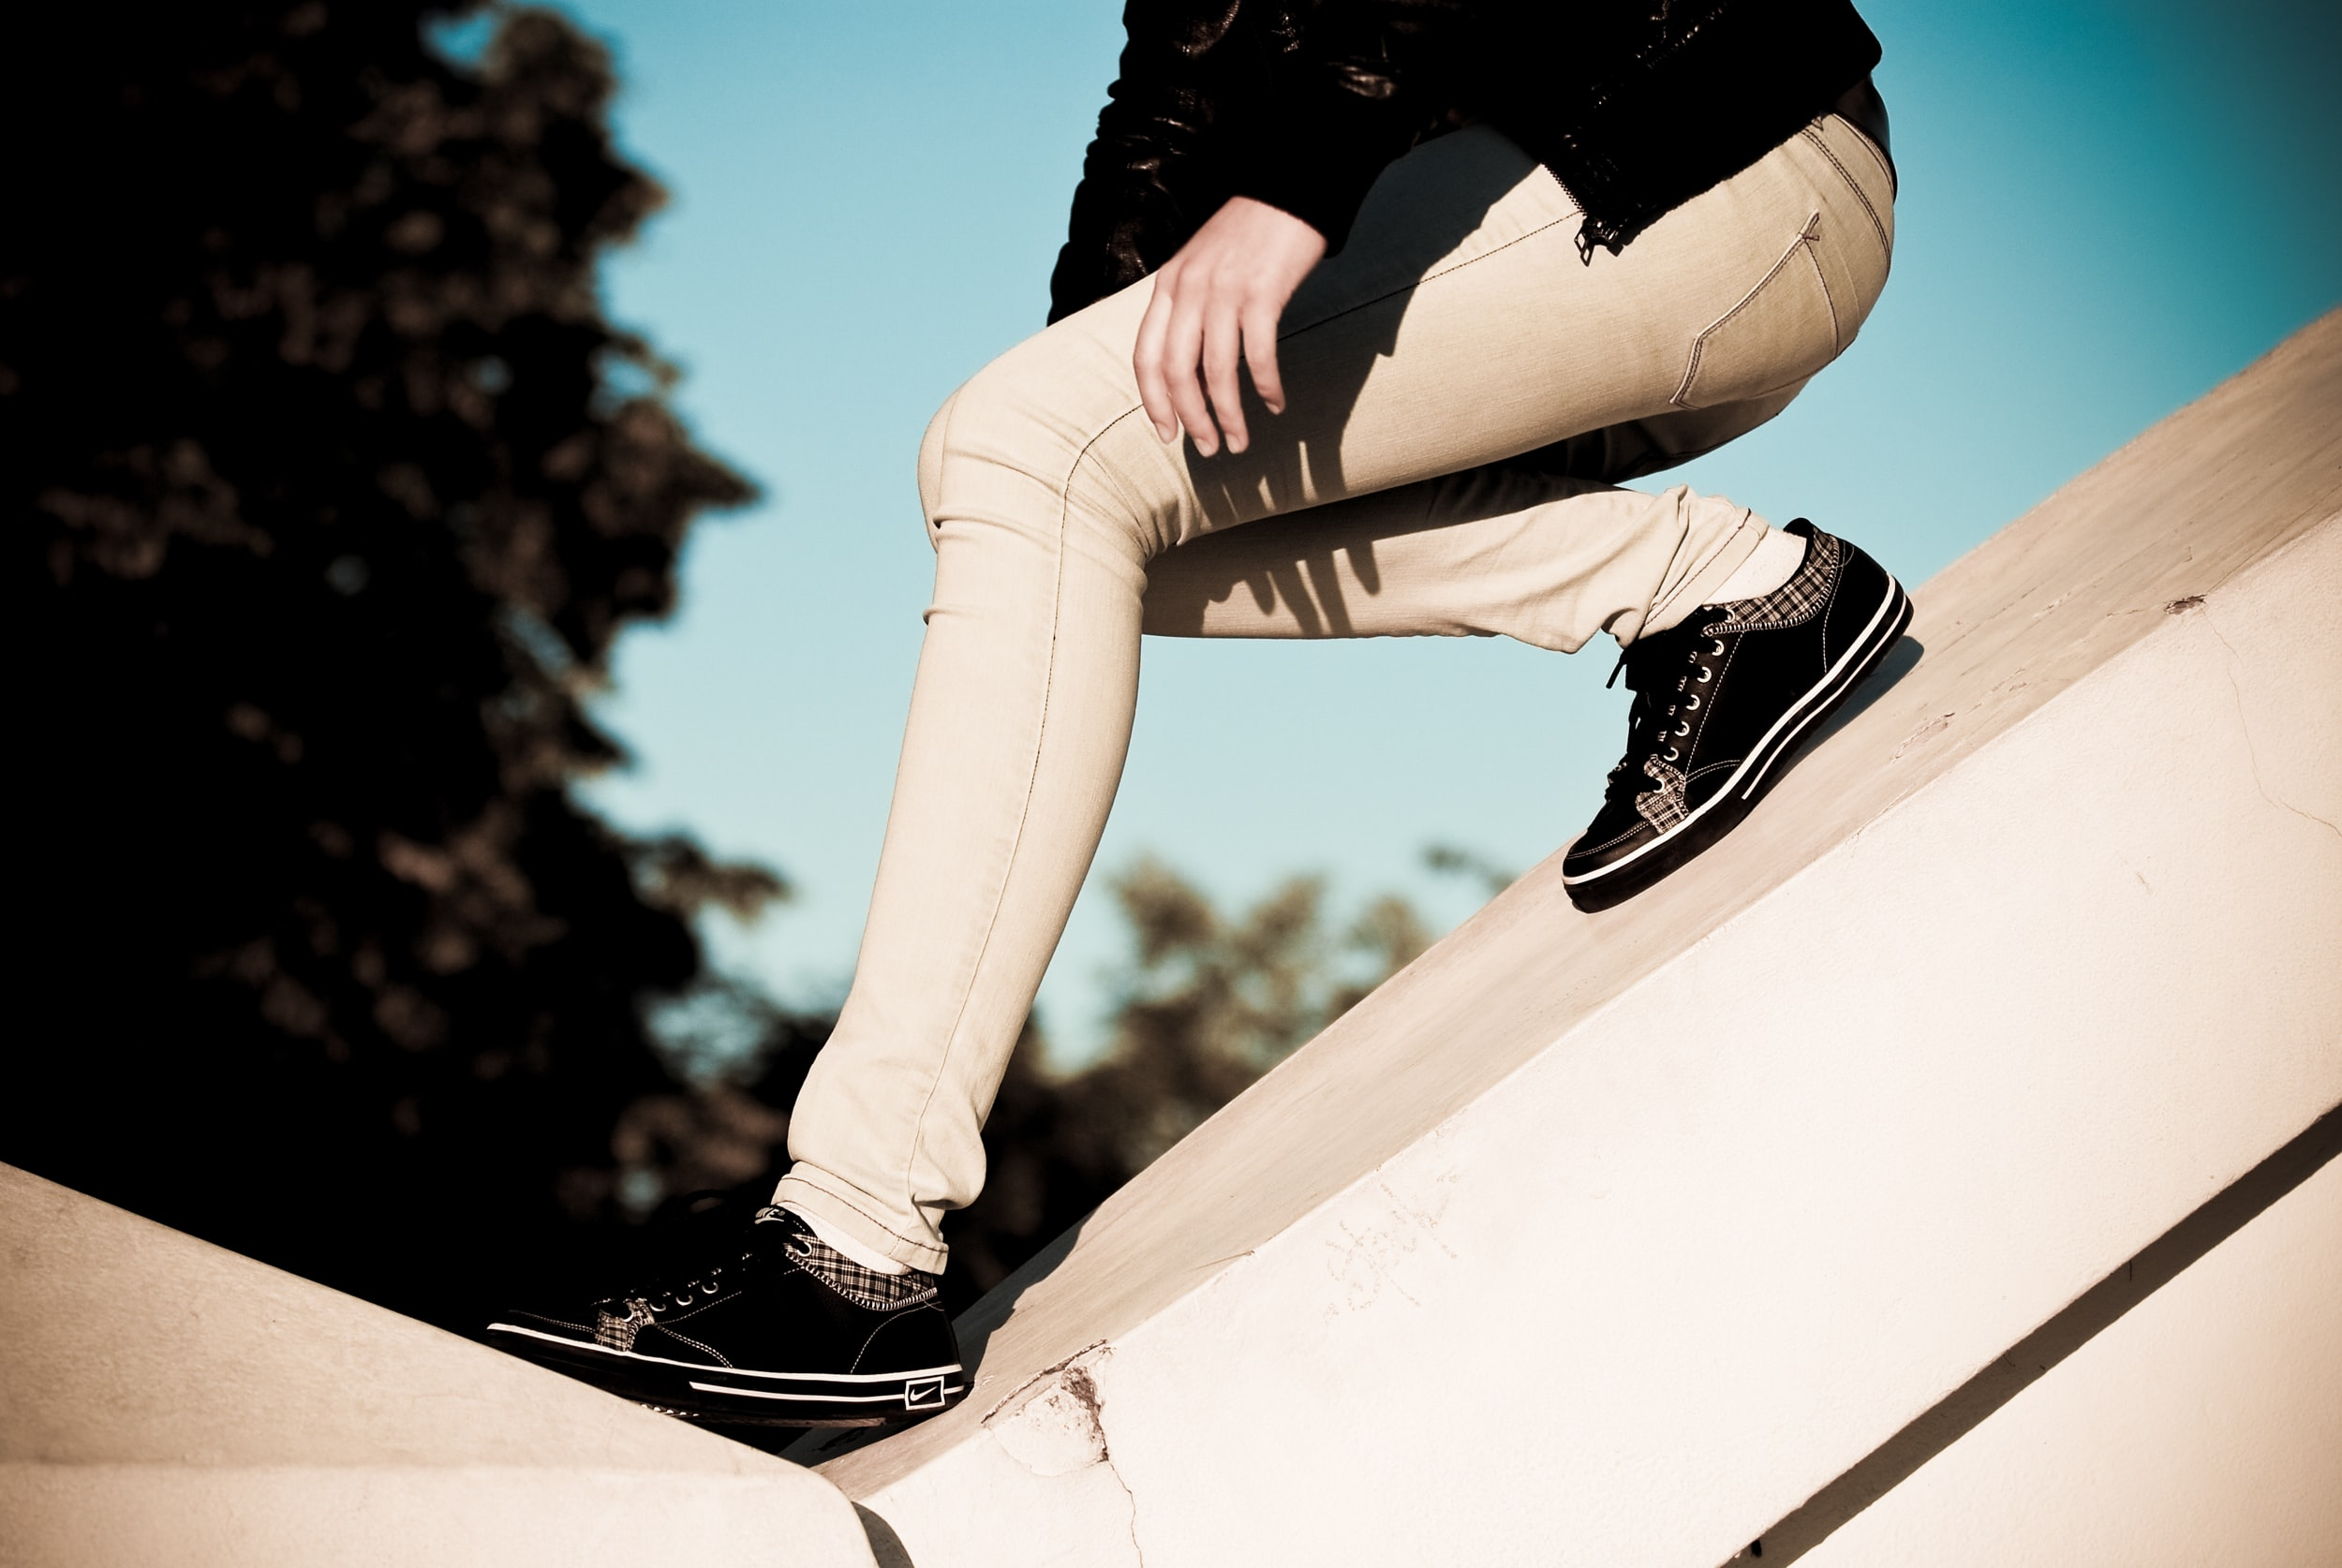 person wearing beige pants sliding on slope